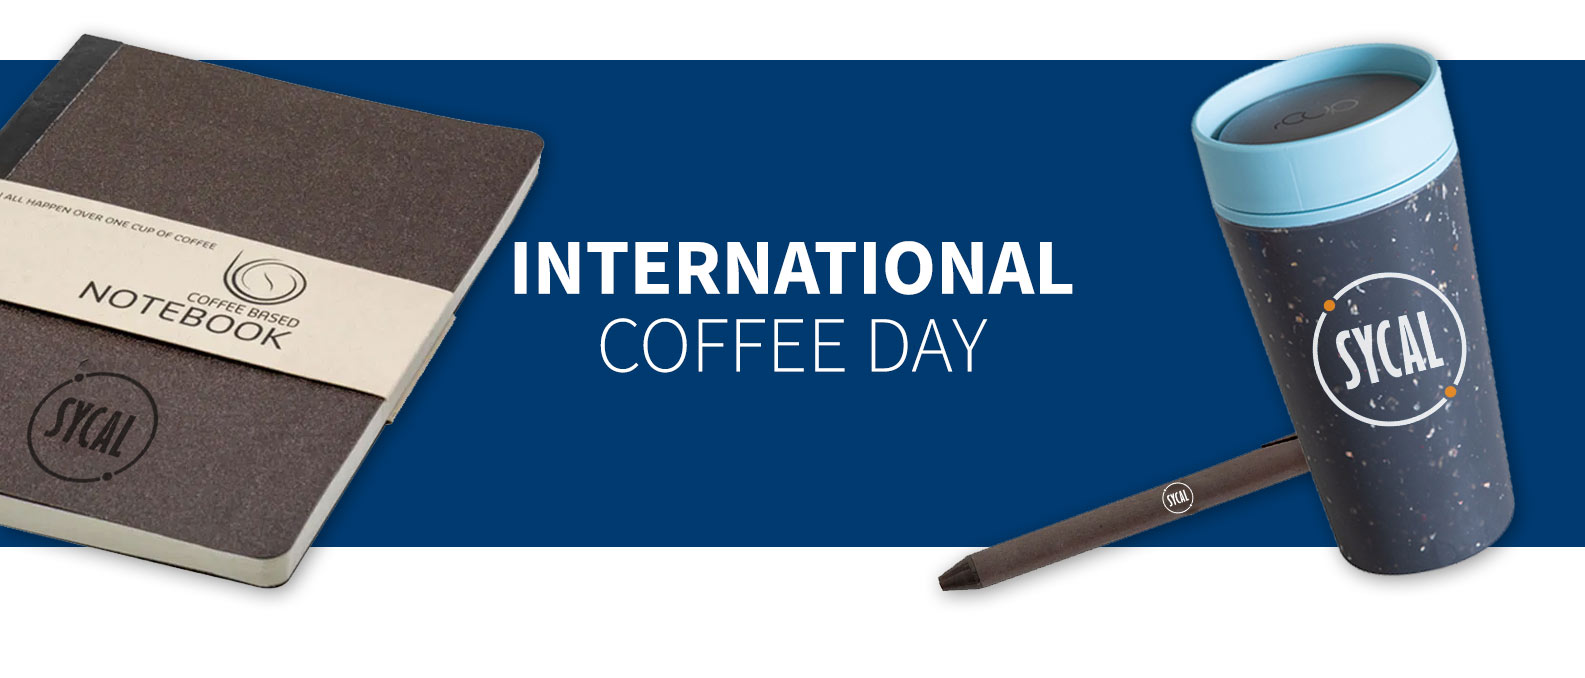 INTERNATIONAL COFFEE DAY PROMOTIONAL BRANDED MERCHANDISE